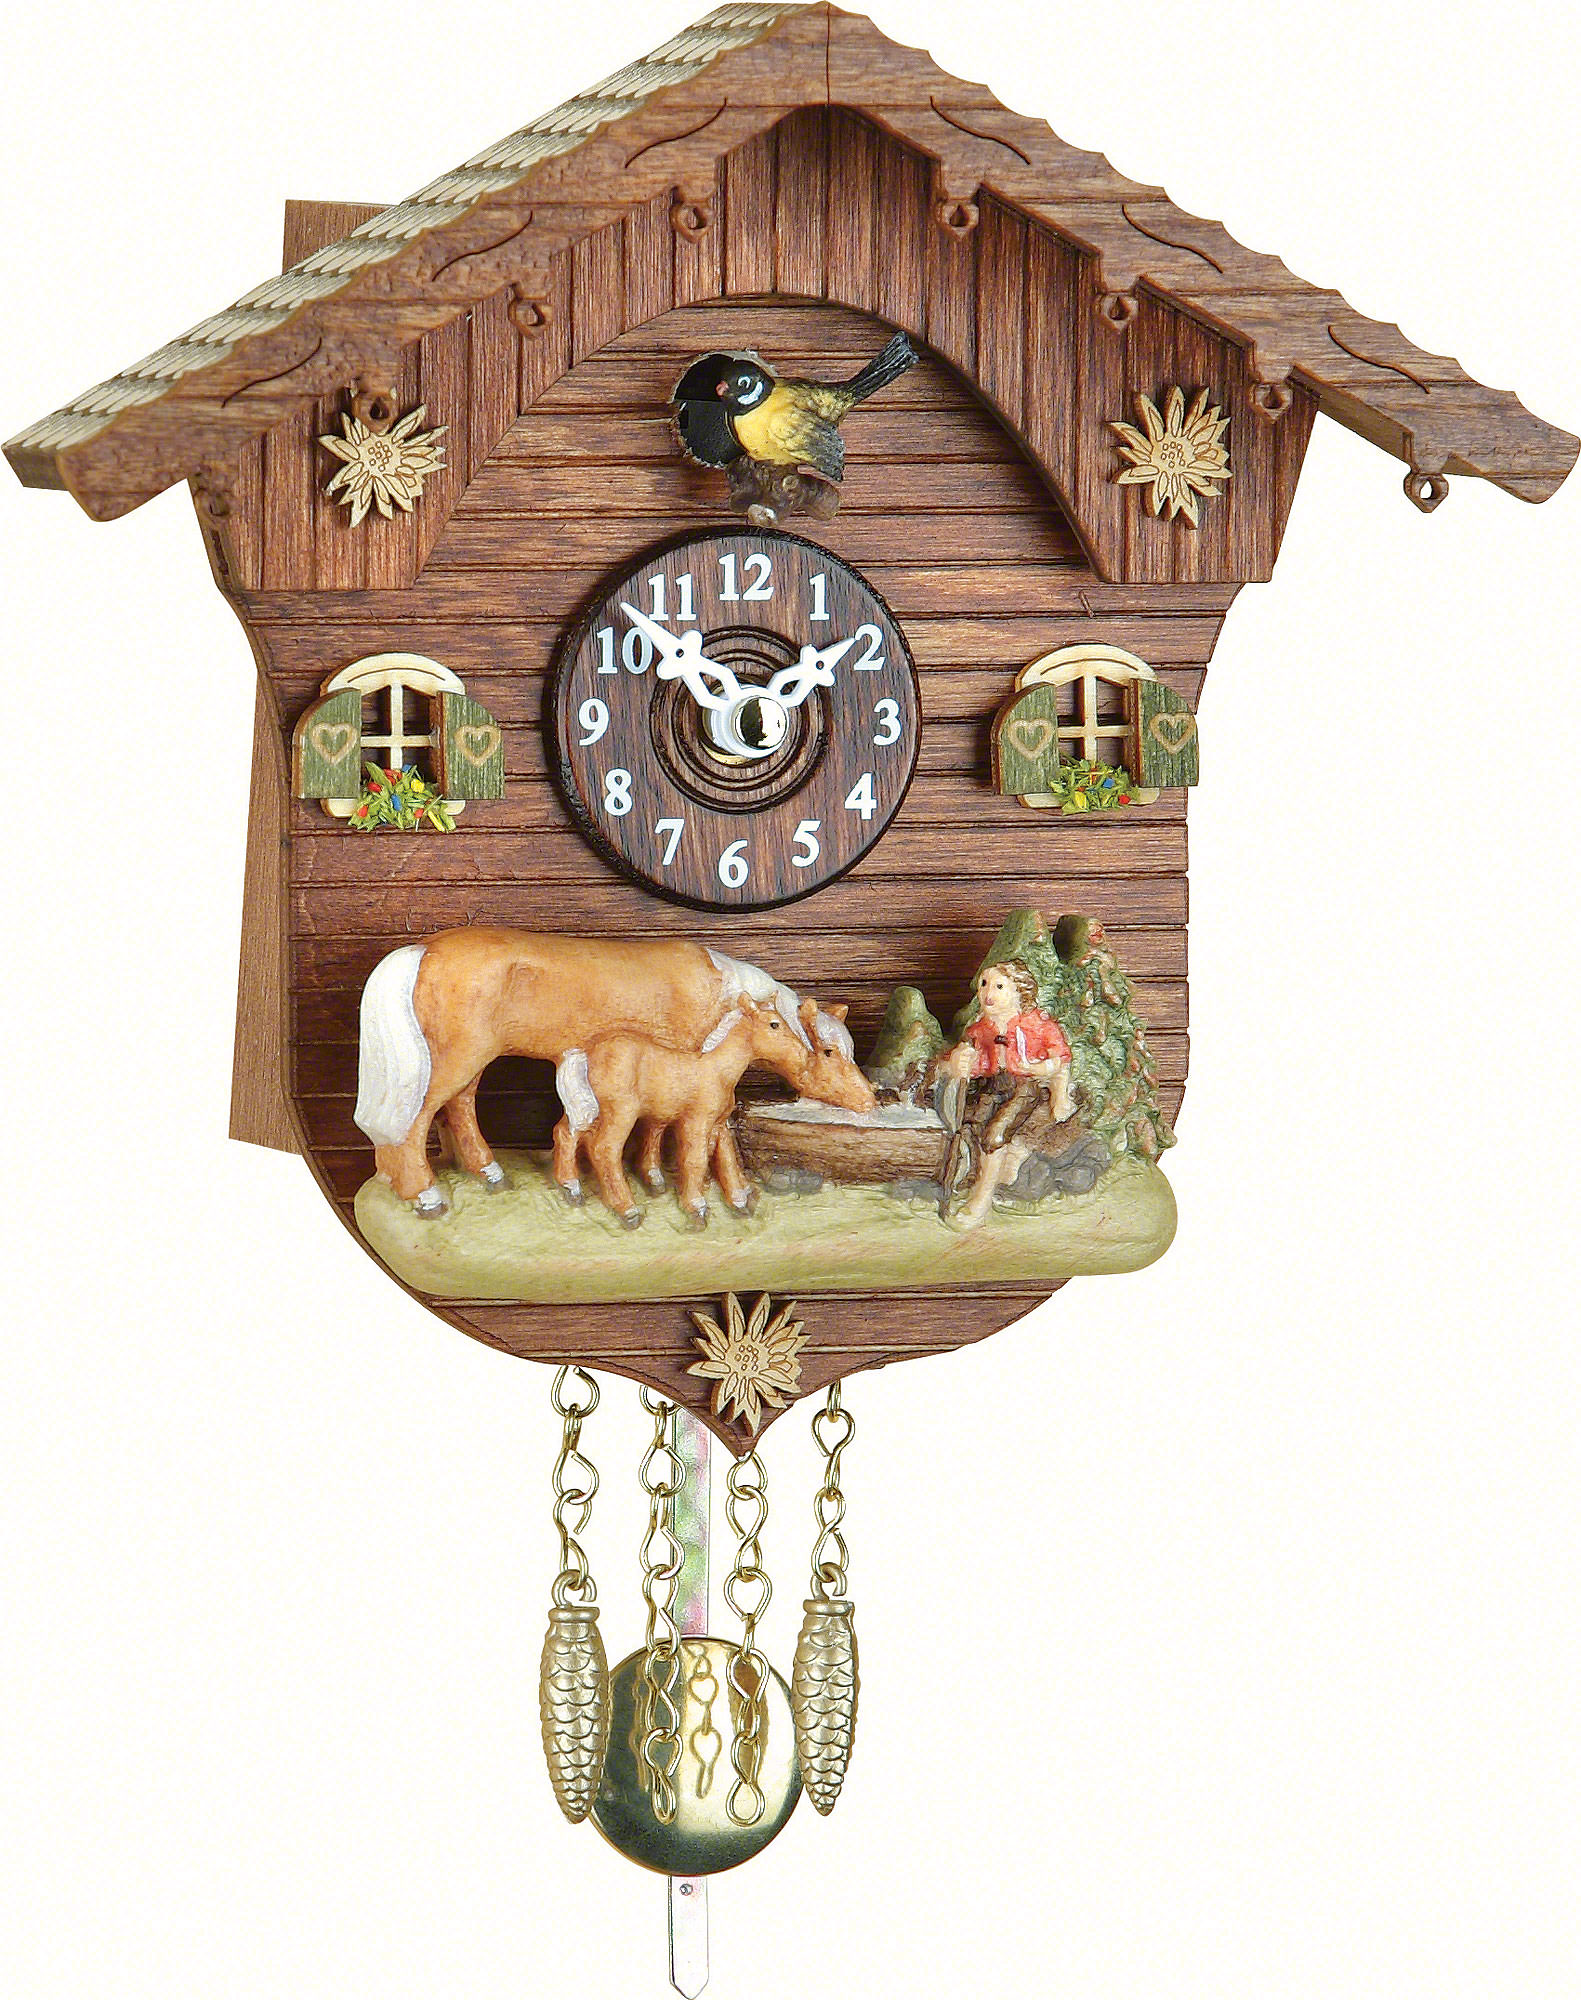 Cuckoo clock quartz movement black forest pendulum clock style 15cm by trenkle uhren 2027pq - Cuckoo clock pendulum ...